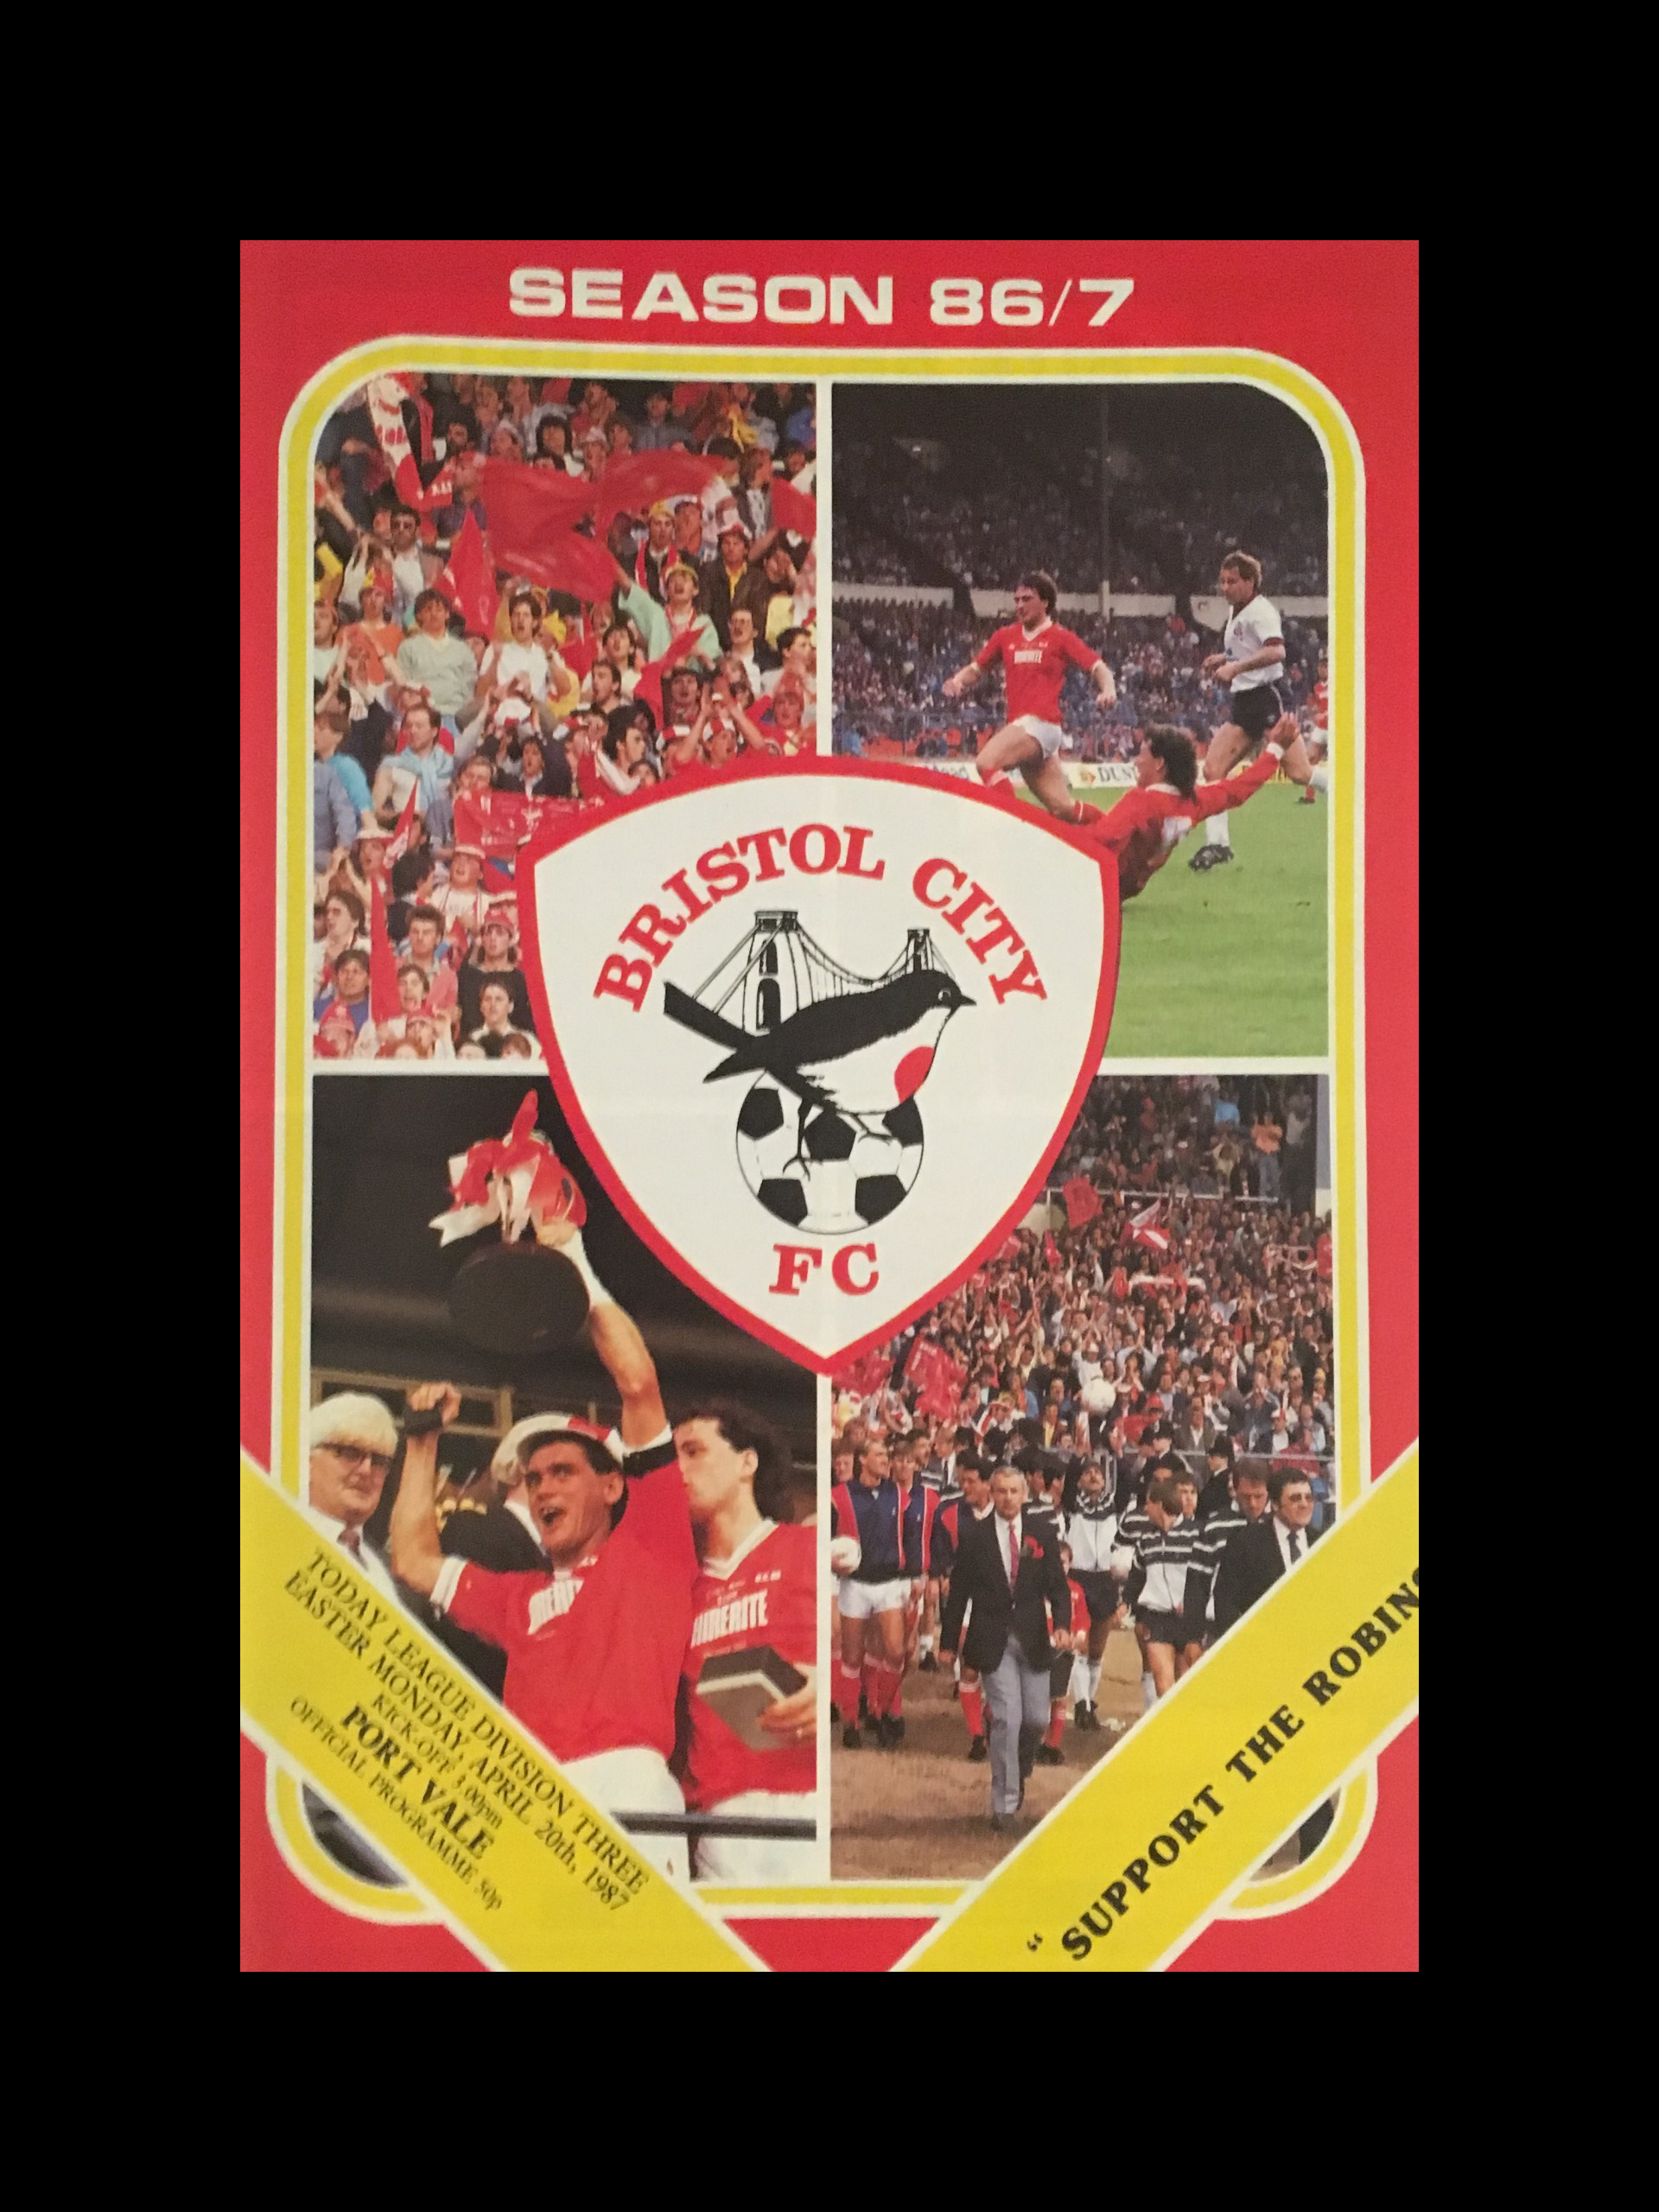 Bristol City v Port Vale 20-04-87 Programme